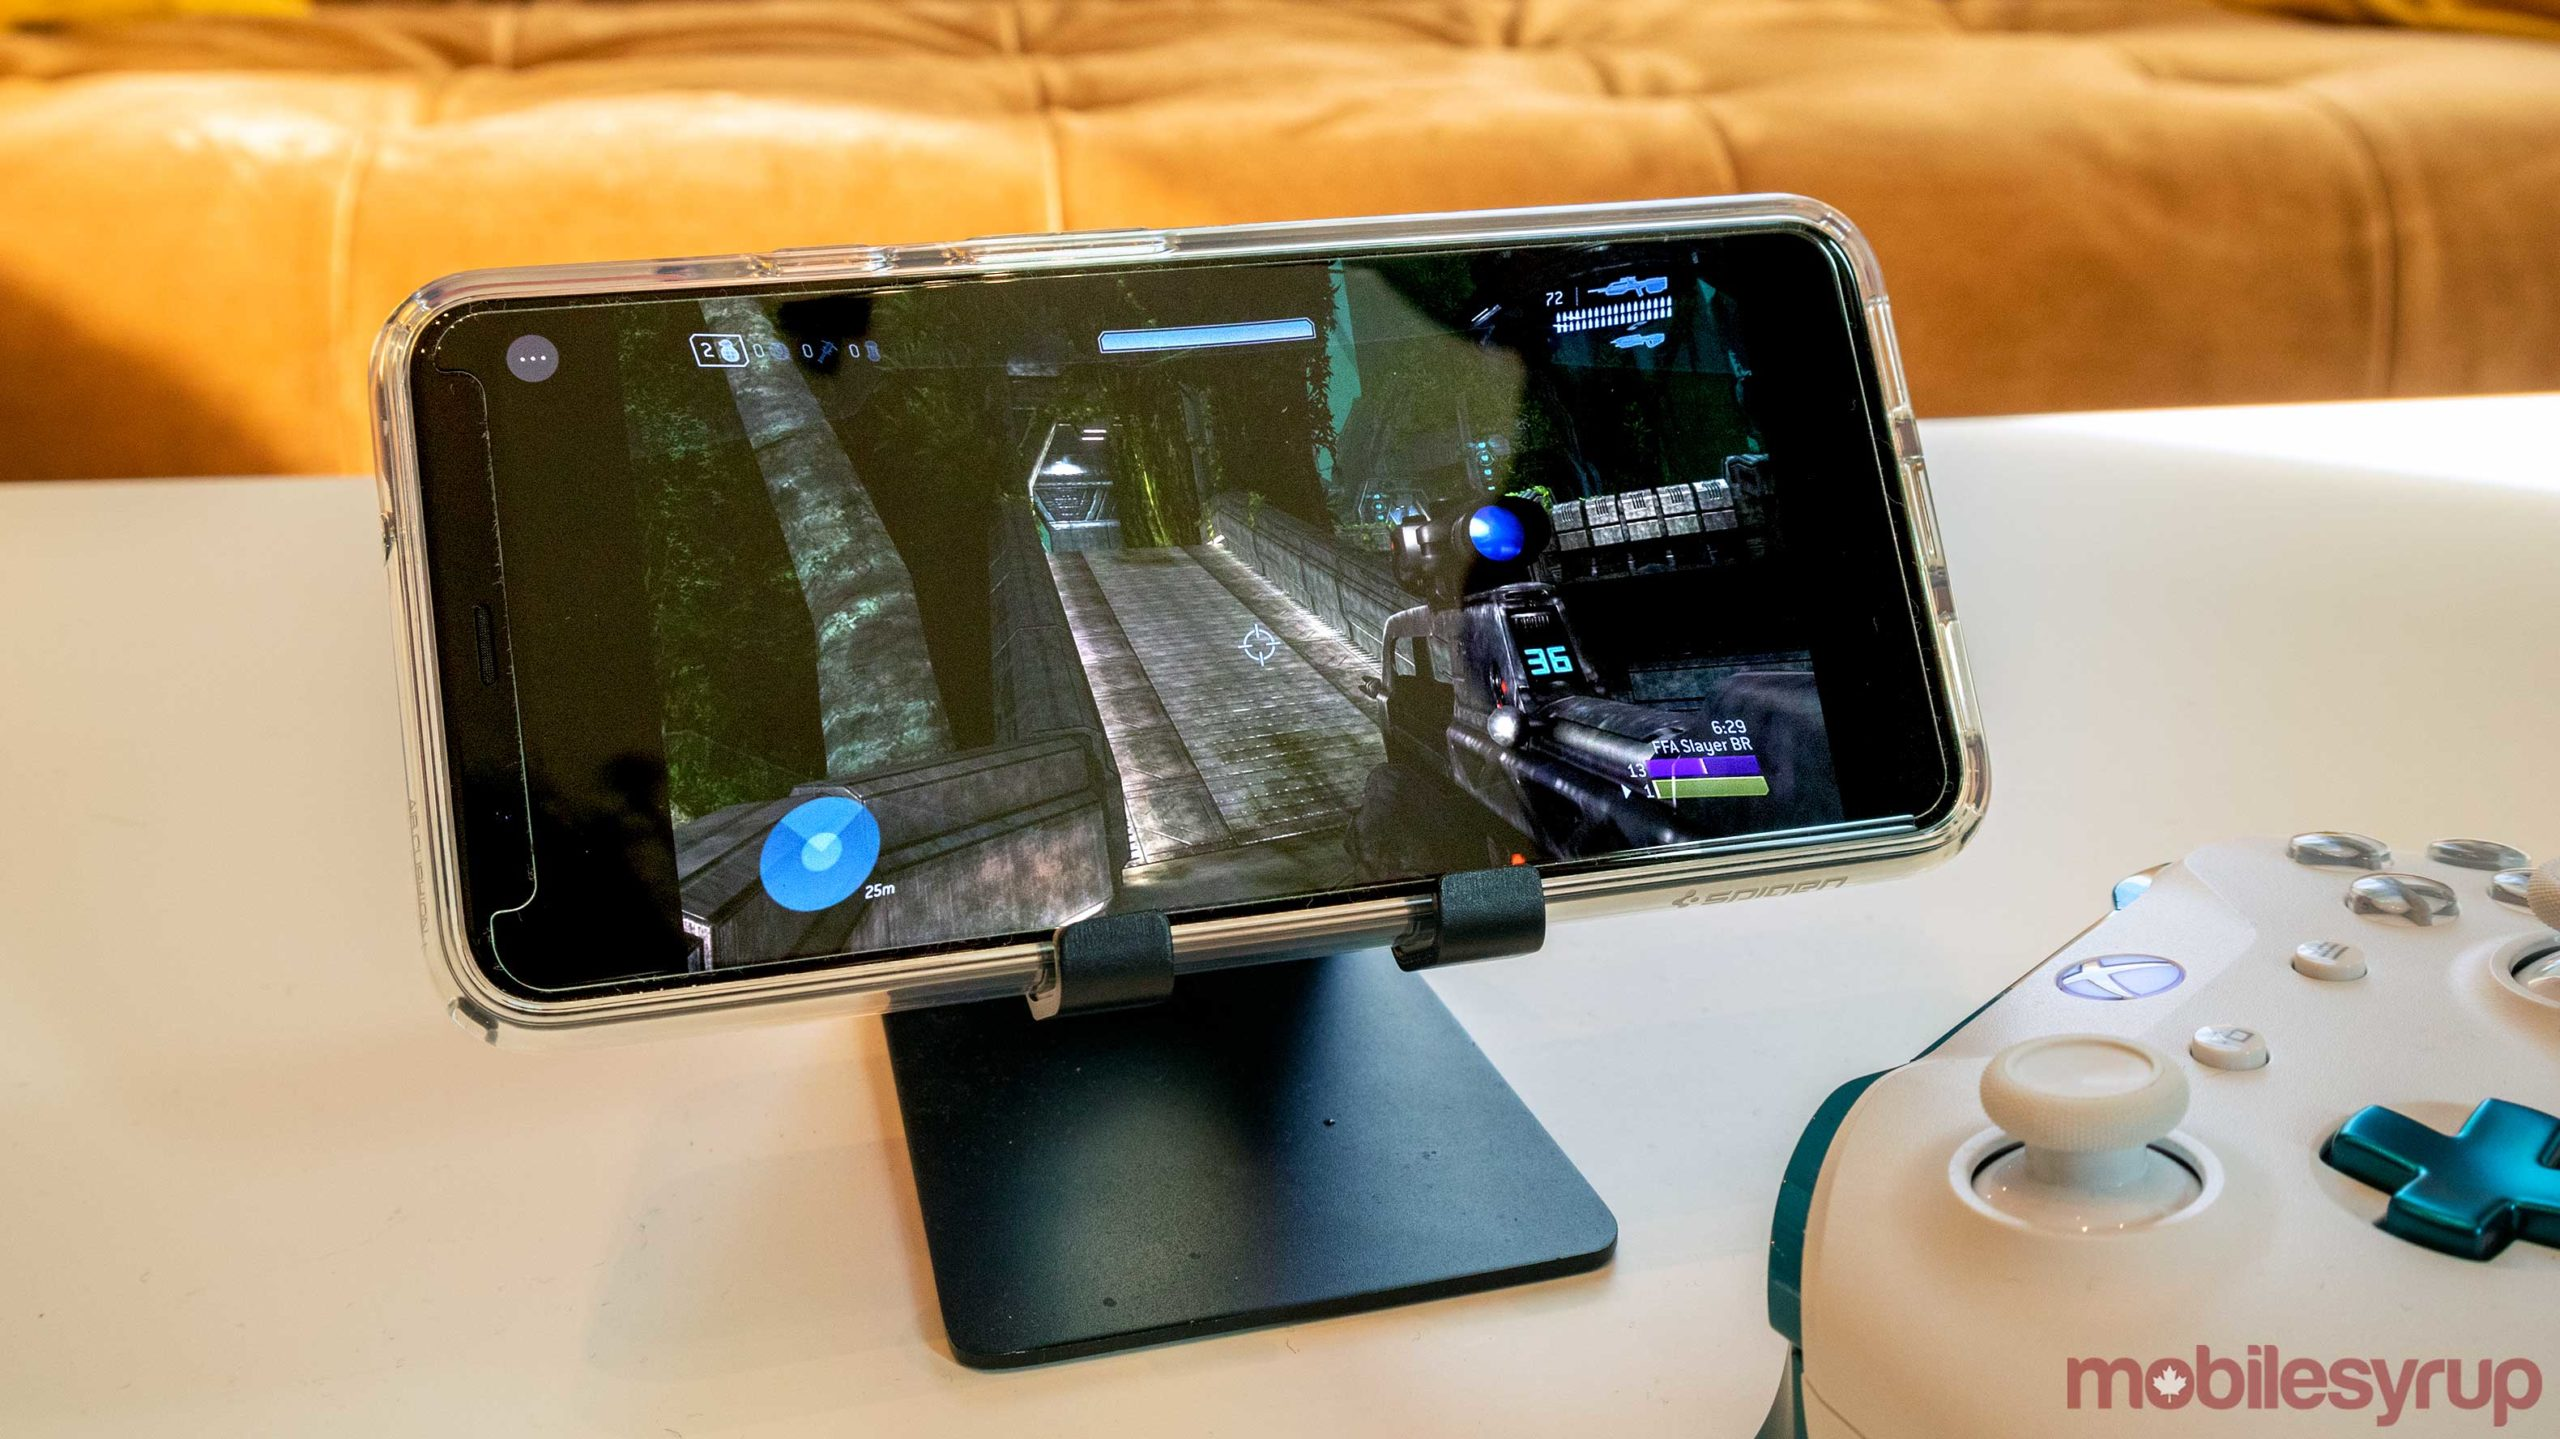 Project xCloud leads on bringing Xbox streaming to Canada and the future of gaming